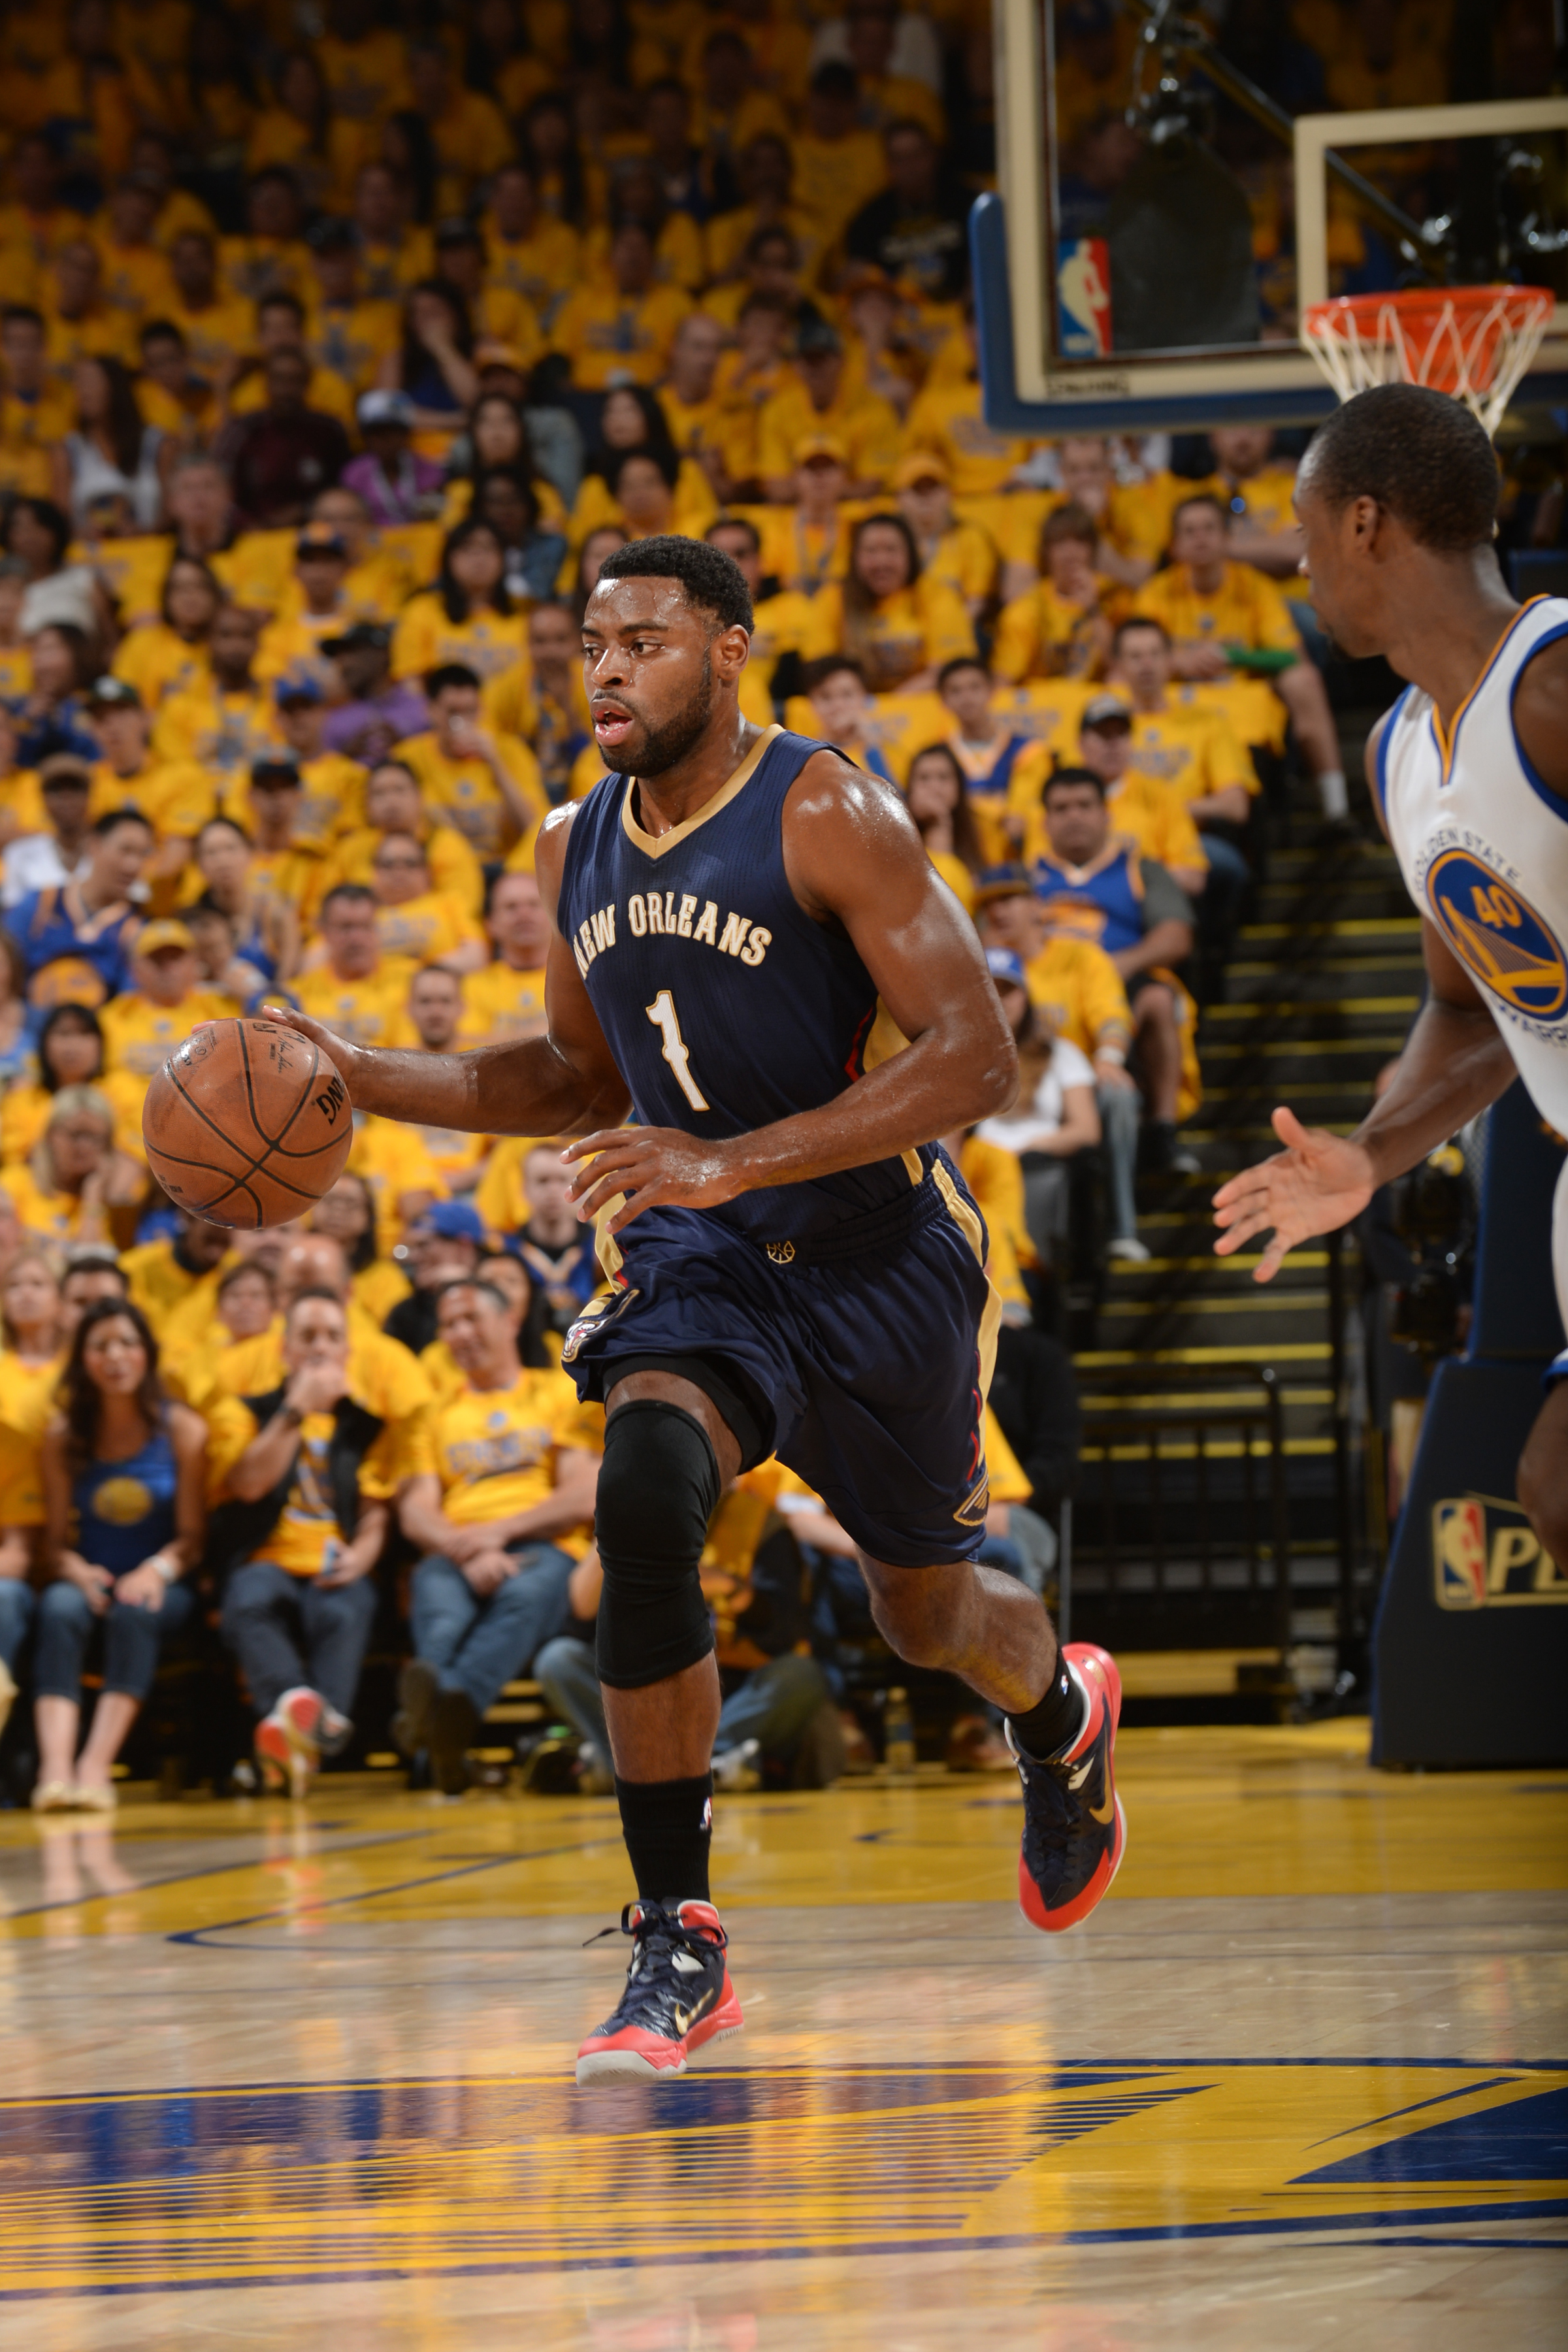 OAKLAND, CA - APRIL 18: Tyreke Evans #1 of the New Orleans Pelicans drives to the basket against the Golden State Warriors during Game One of the Western Conference Quarterfinals during the NBA Playoffs on April 18, 2015 at Oracle Arena in Oakland, Califo